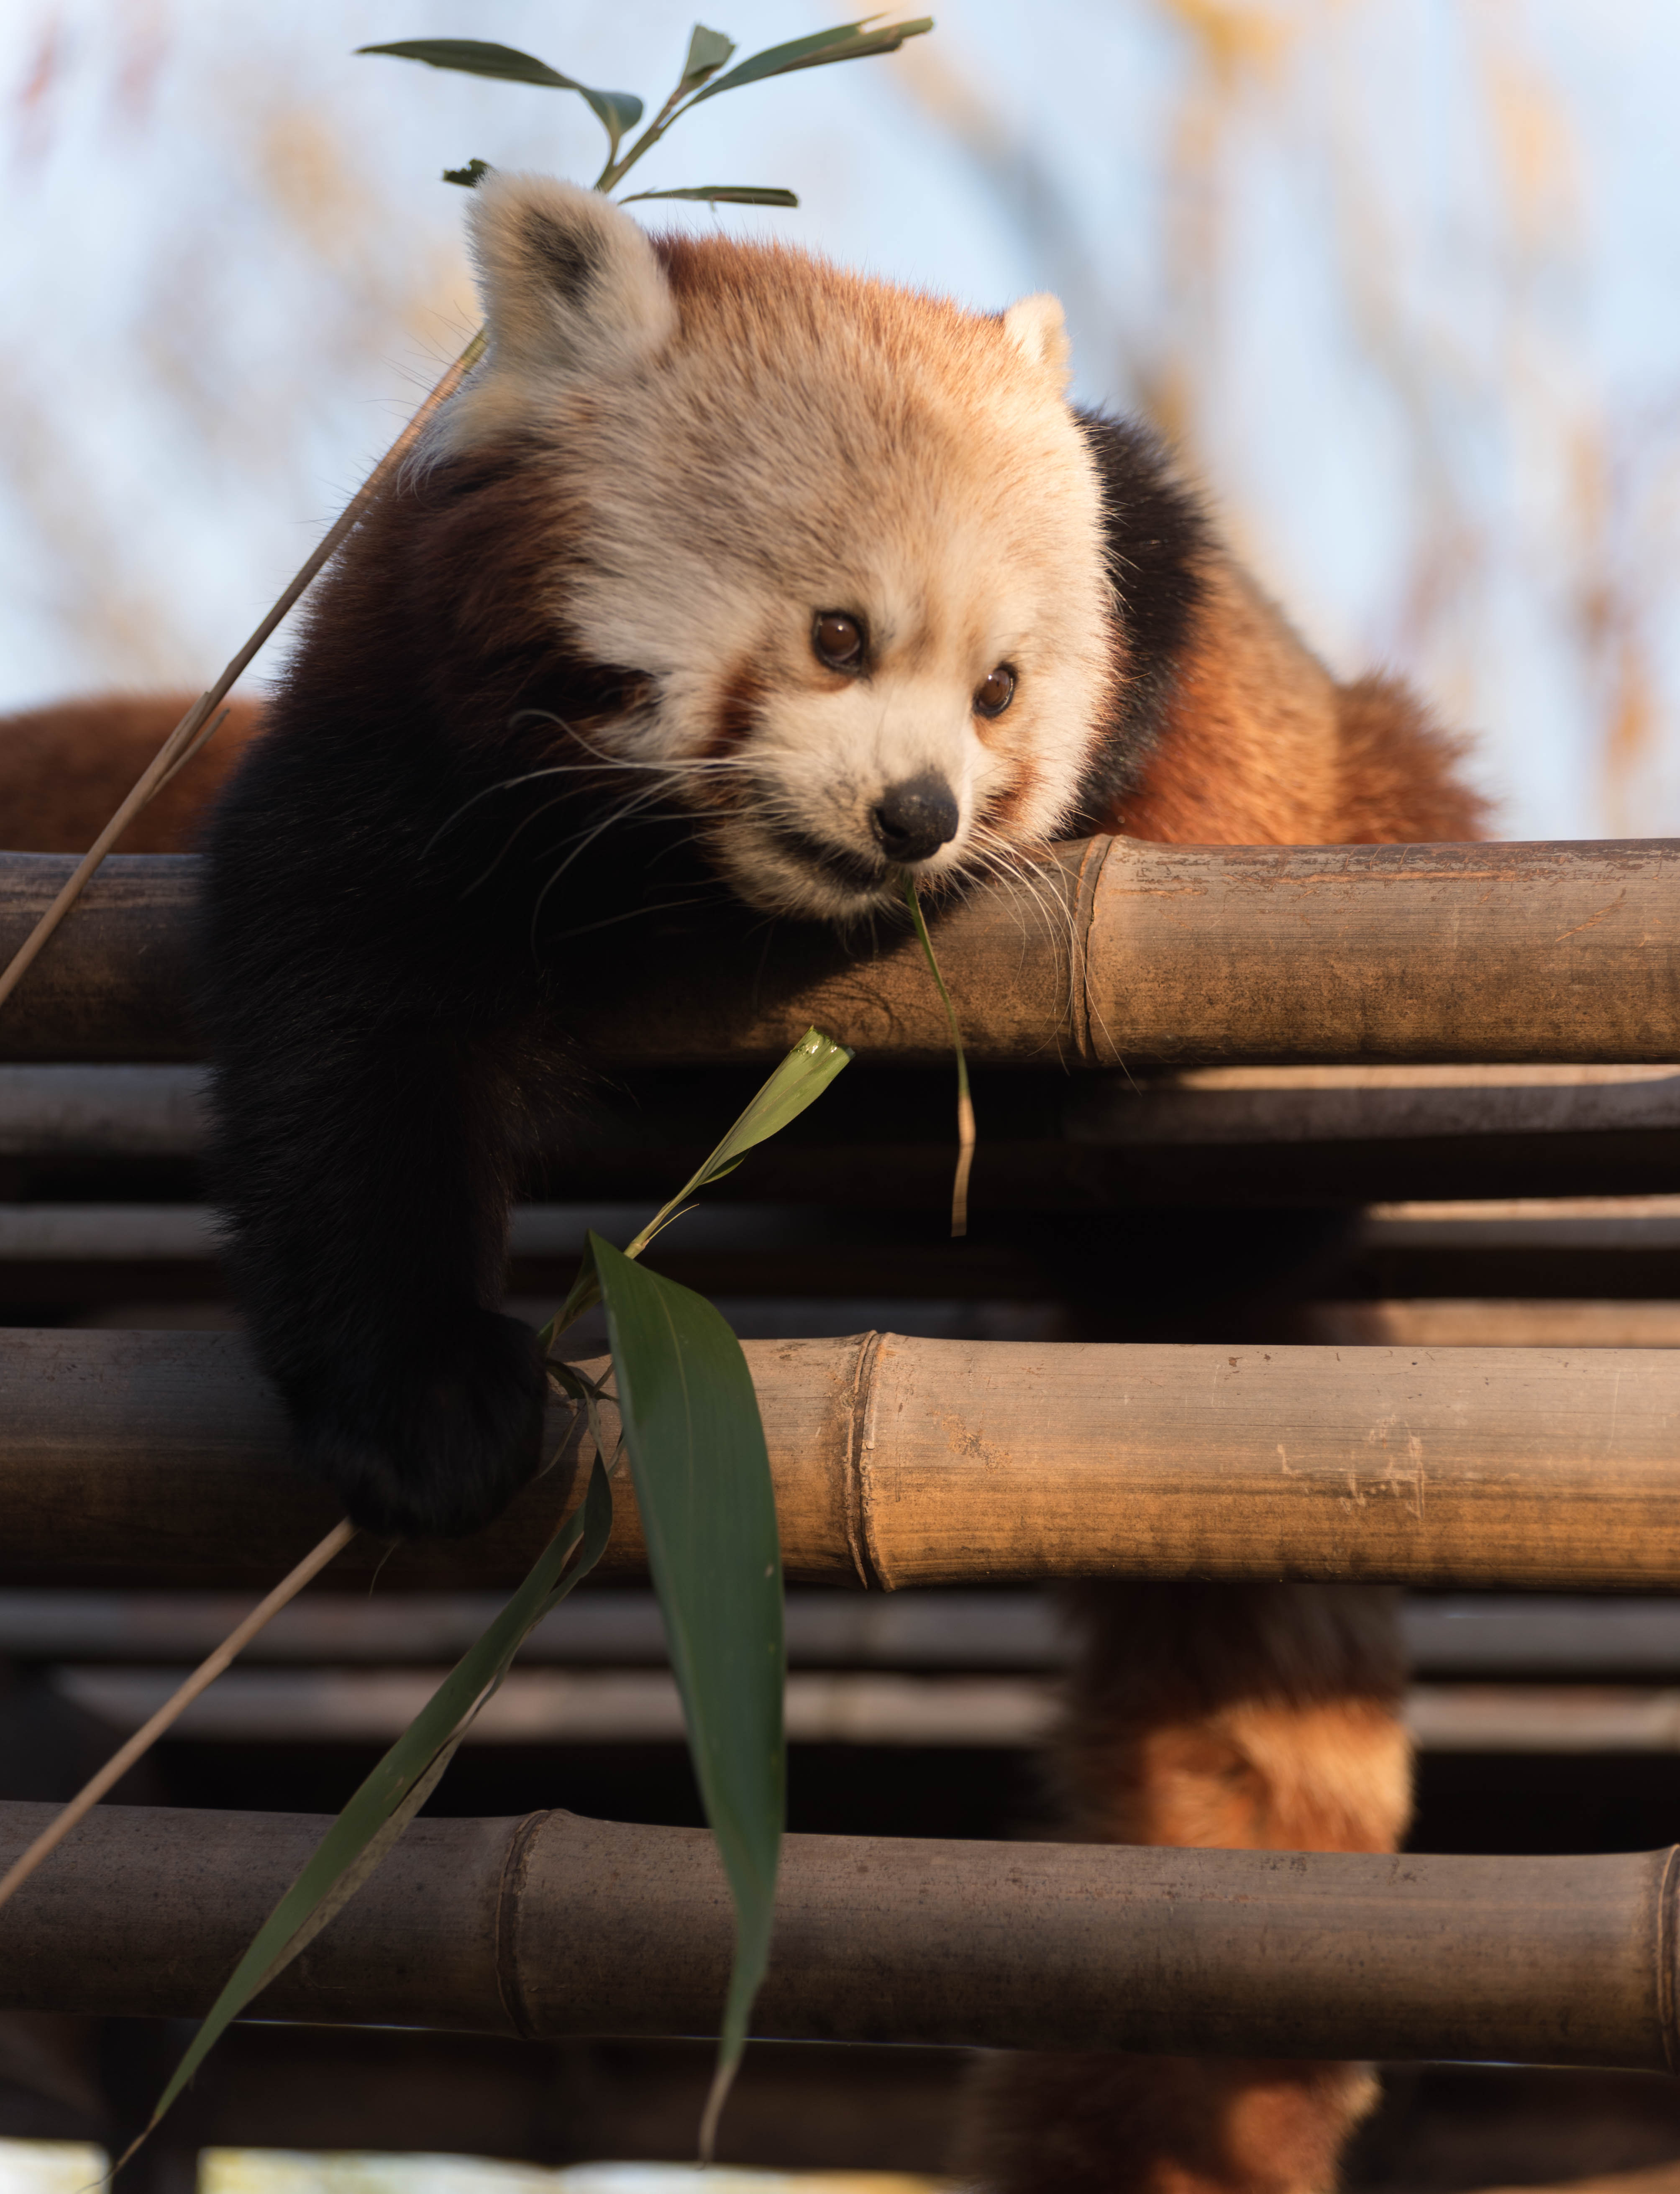 121493 download wallpaper Animals, Red Panda, Nice, Sweetheart, Bamboo screensavers and pictures for free